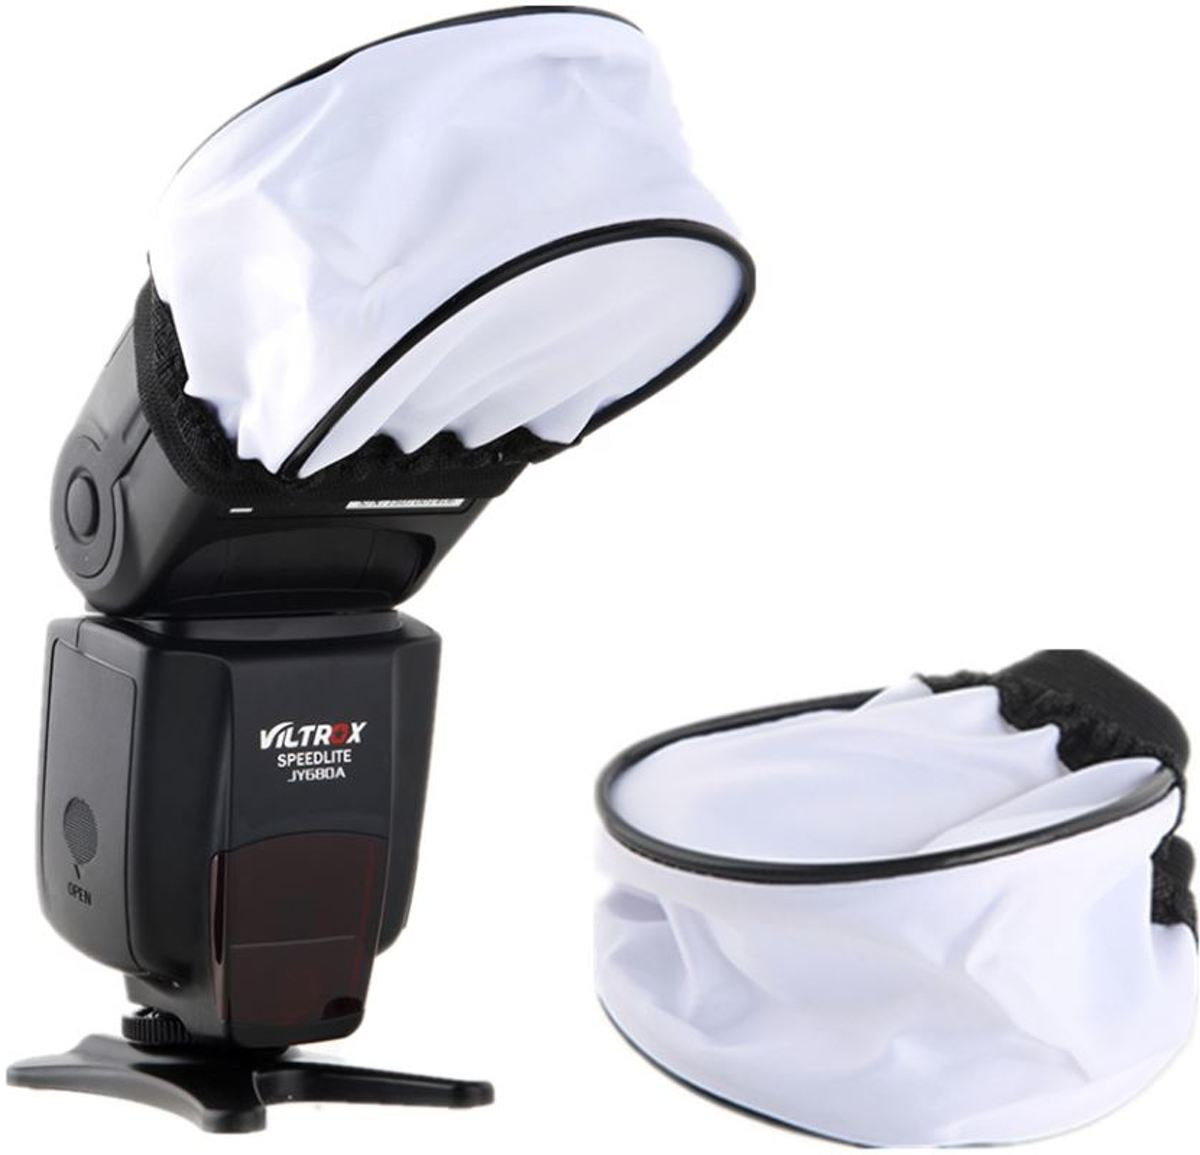 Flash / Flitser Licht Softbox - Voor Canon / Nikon / Pentax / Yongnuo / Sony Camera kopen